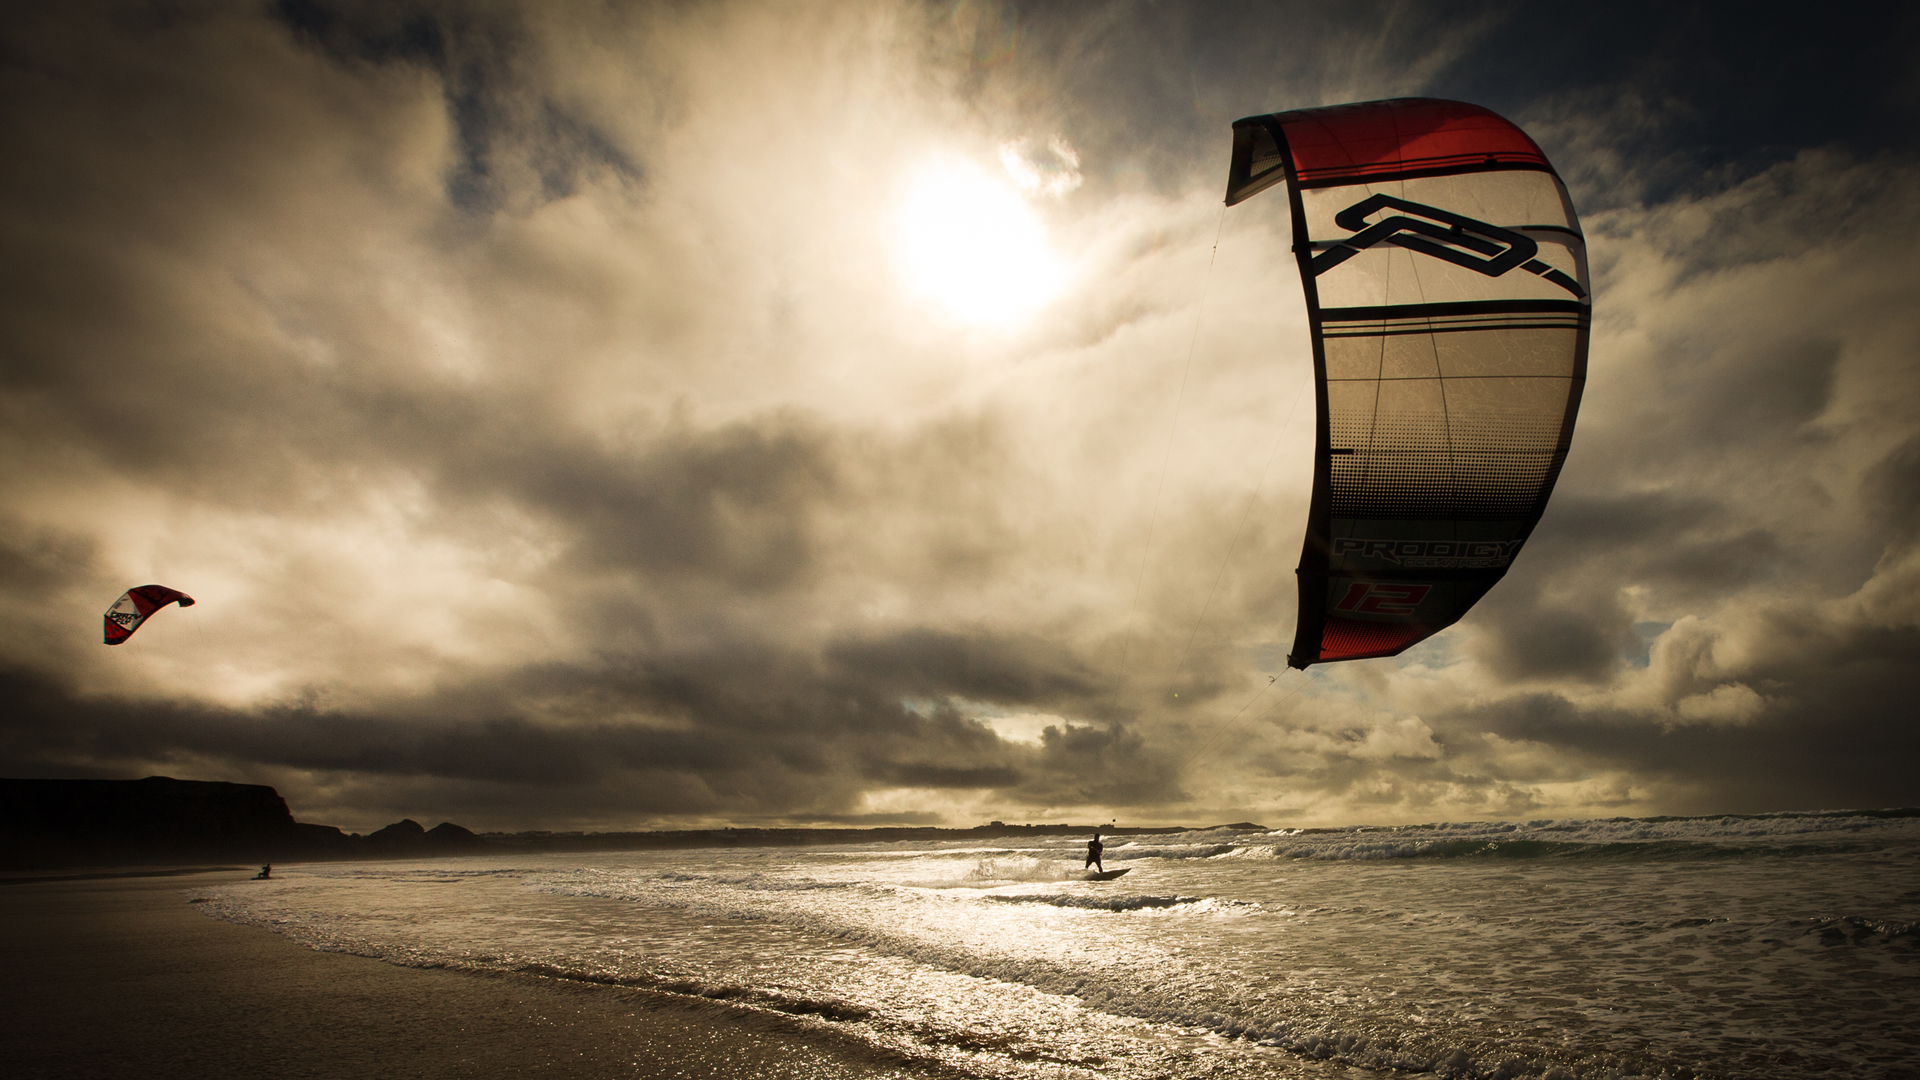 kitesurf wallpaper image - A nice sunset kitesurfing session in the waves. - in resolution: High Definition - HD 16:9 1920 X 1080